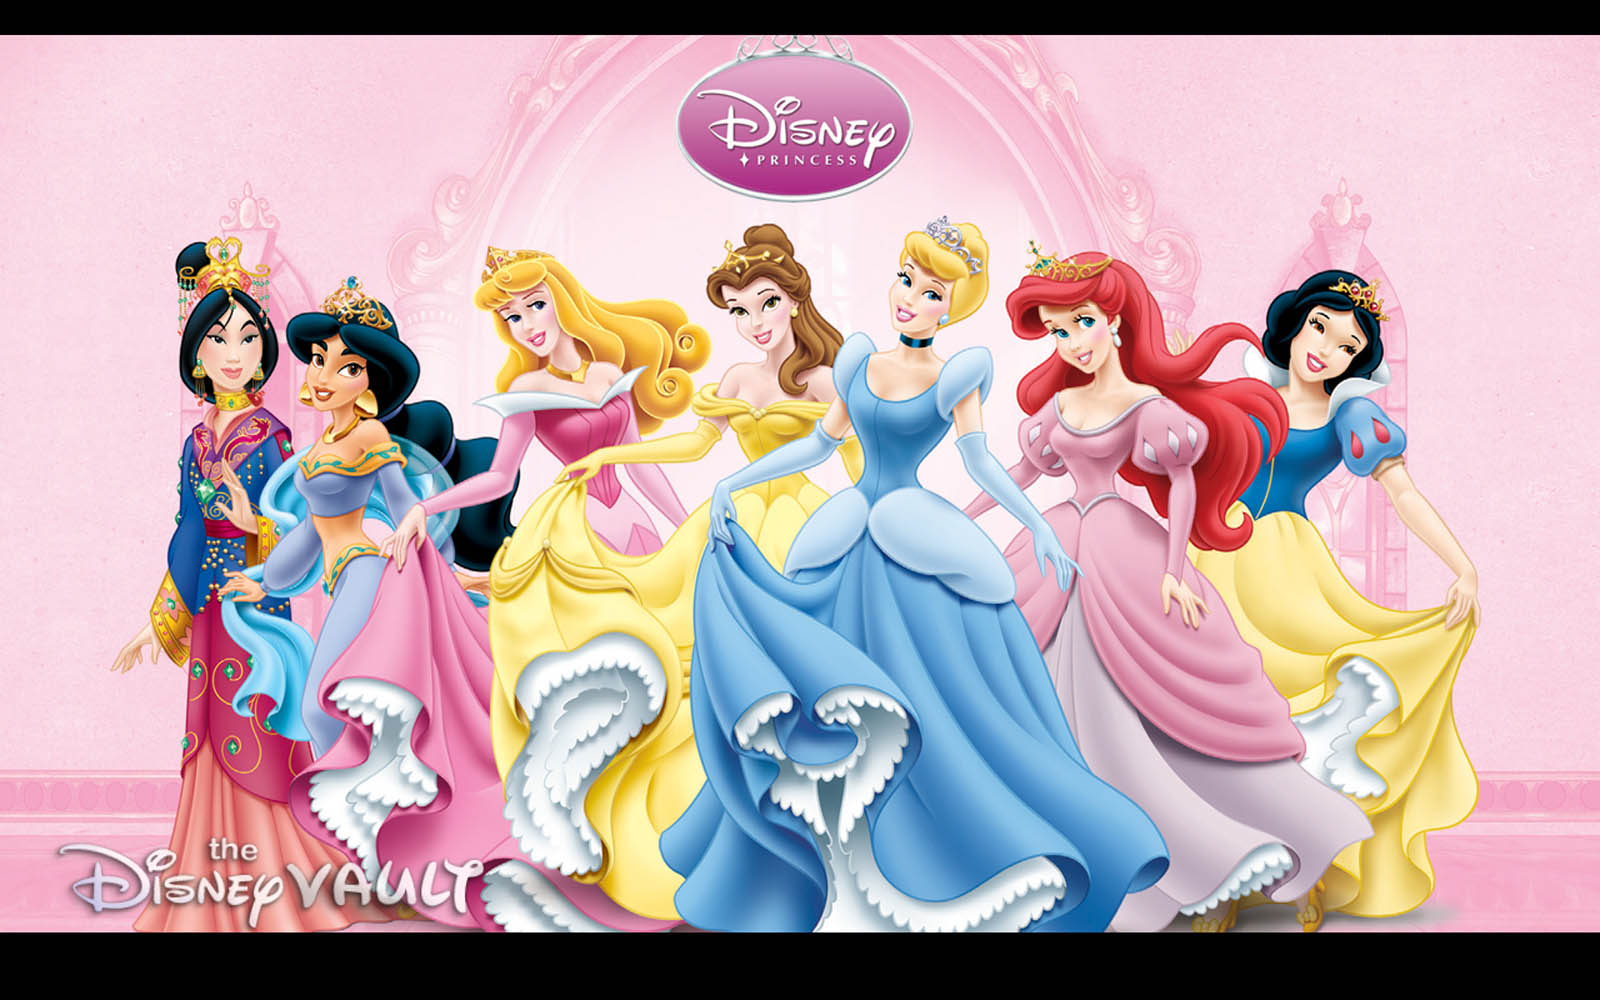 wallpapers Disney Princess Wallpapers 1600x1000